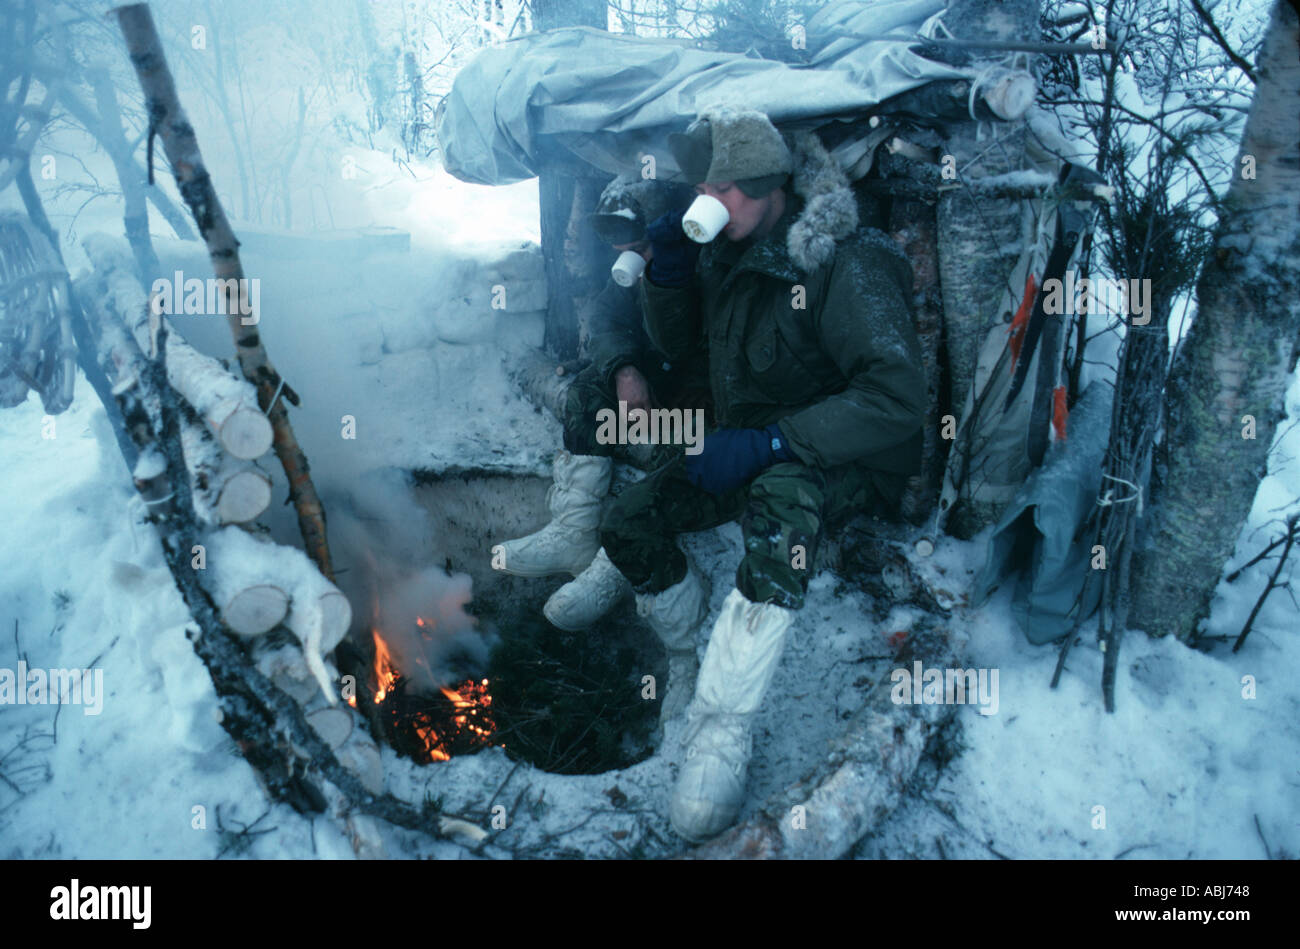 Soldiers on survival exercise in arctic circle keeping warm with fire - Stock Image